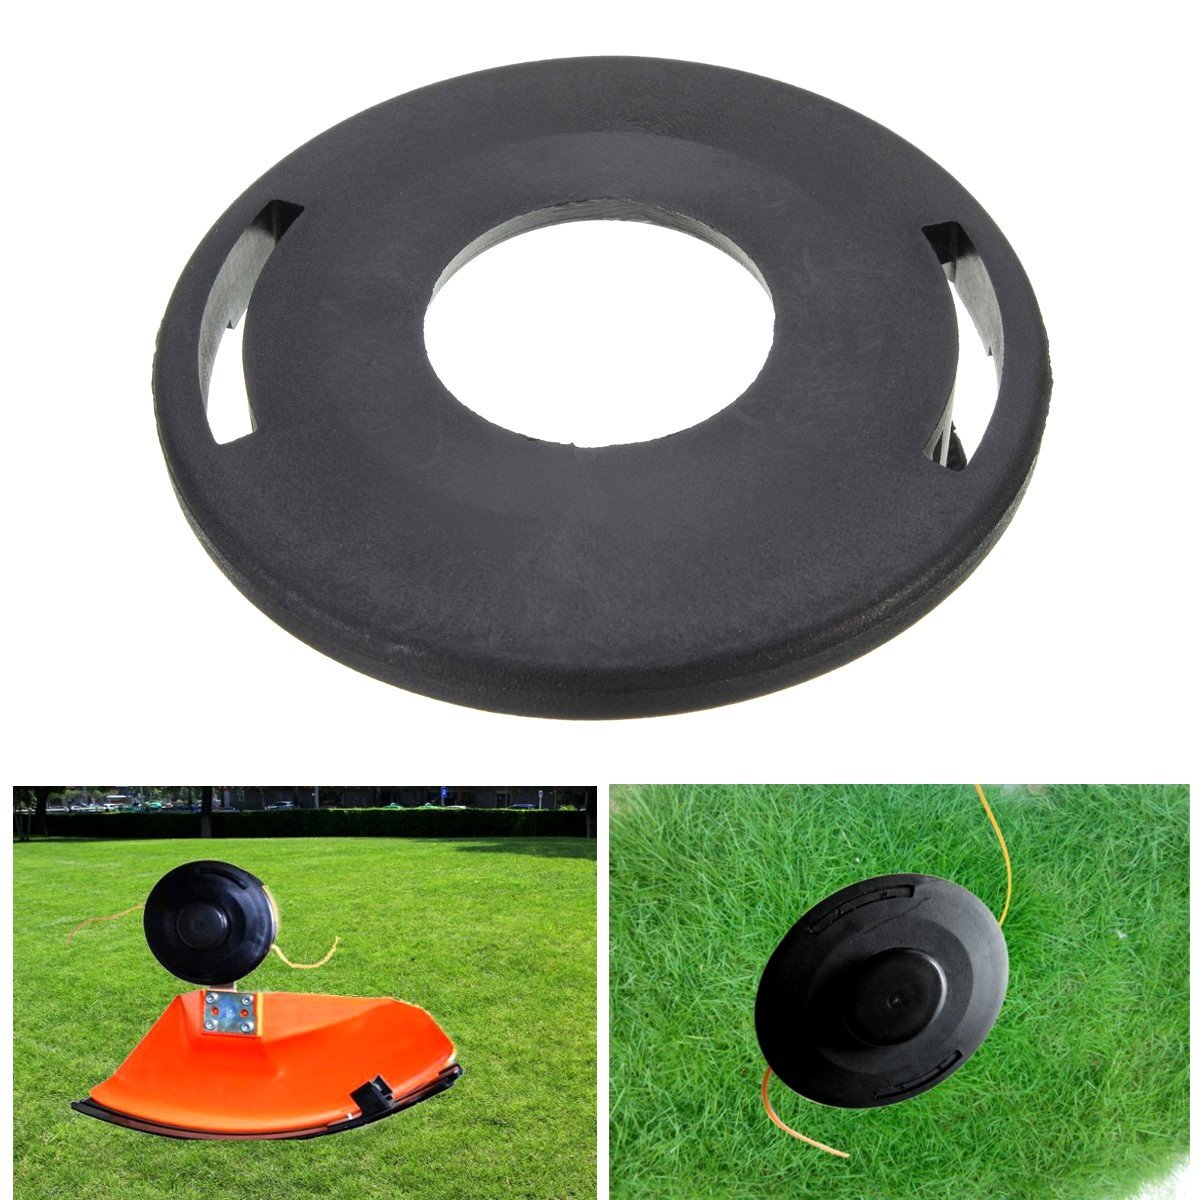 Garden Power Tools - Gardening Trimmer Head Base Cover Replacement Fs44 Fs55 Fs80 Fs83 Fs85 Fs90 - Joist Chief Ceiling Trimming Capacitor Boss Capital Principal Forefront Detonator - 1PCs